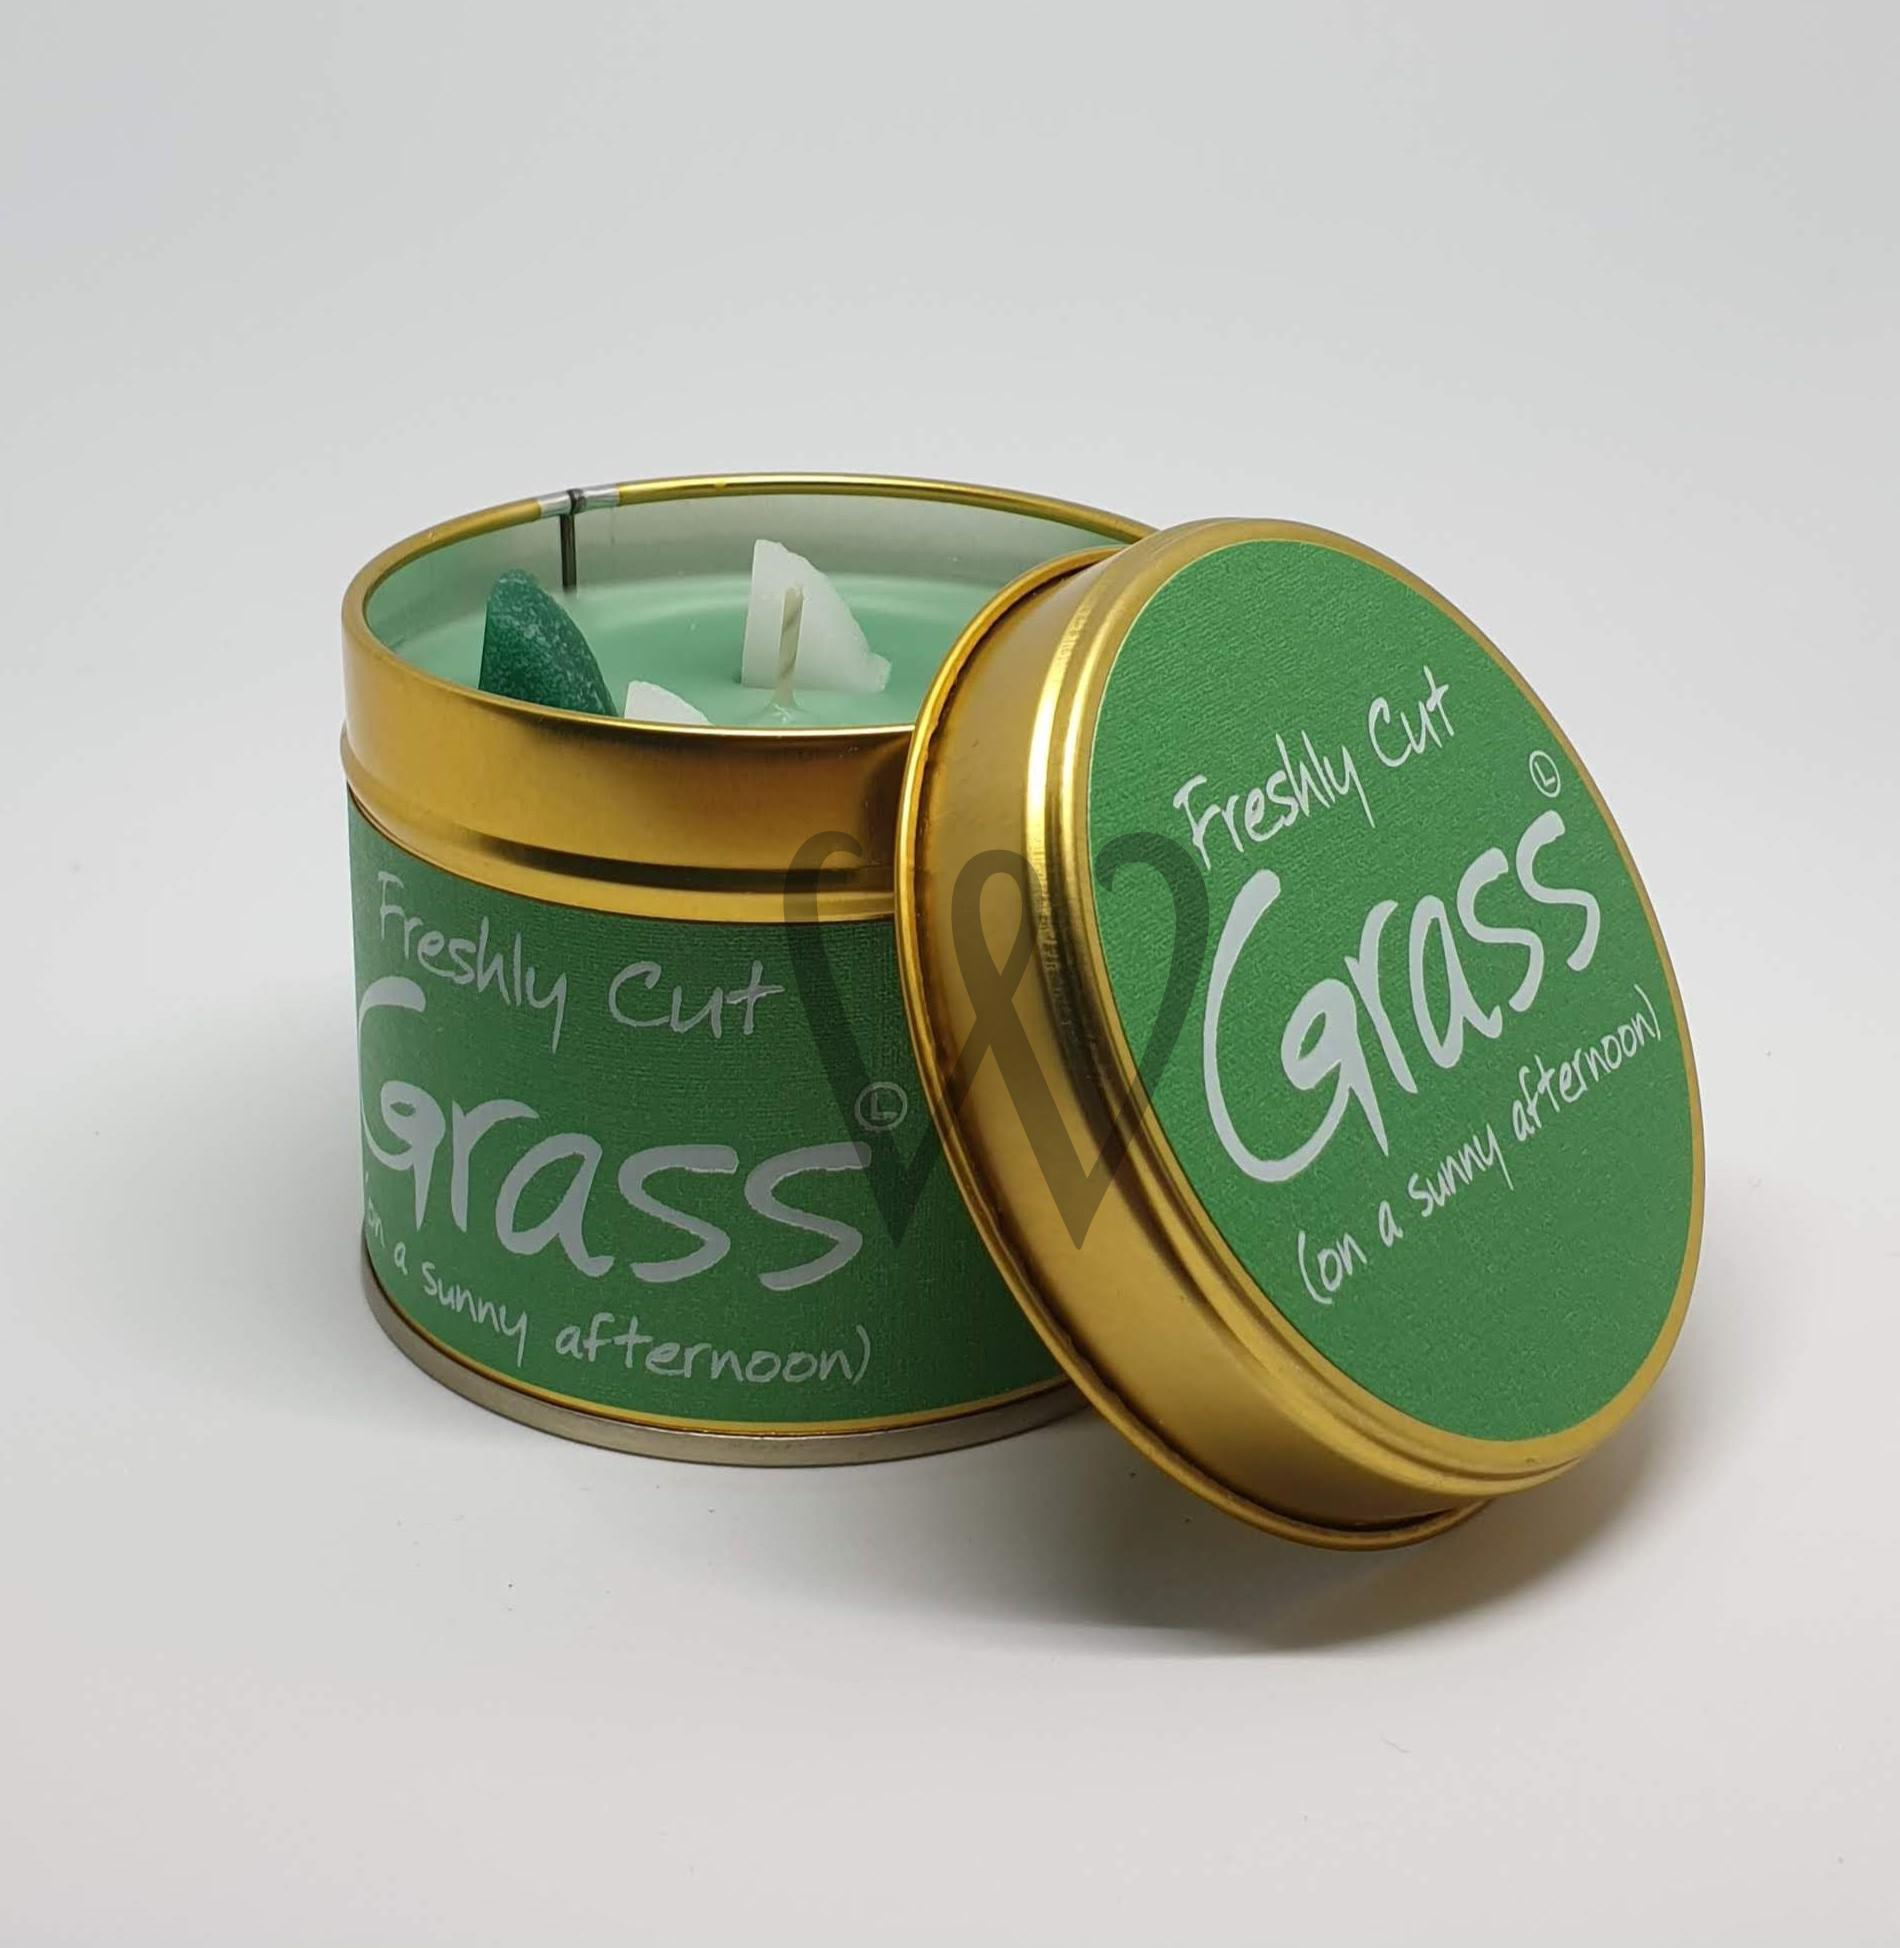 Lily-Flame candle - Cut Grass